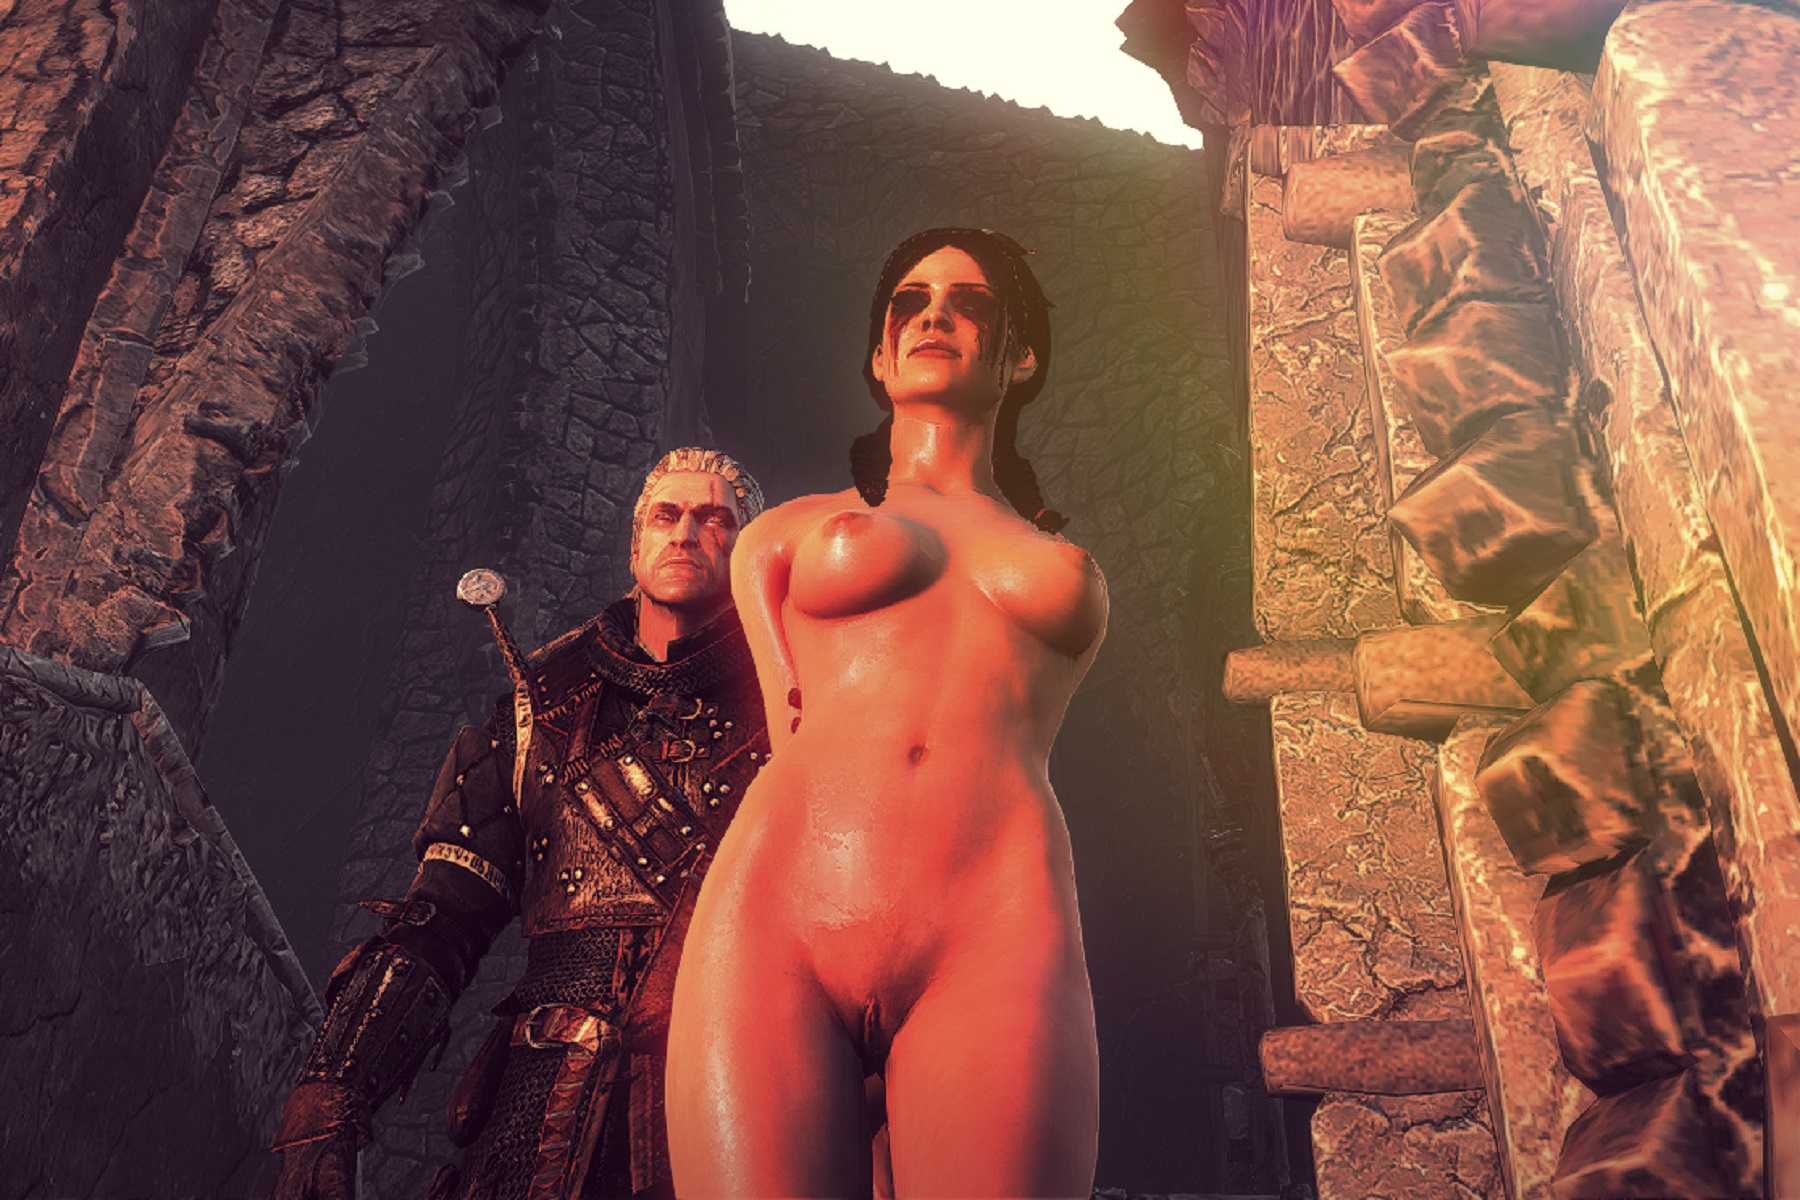 Witcher 2 nude scenes anime model